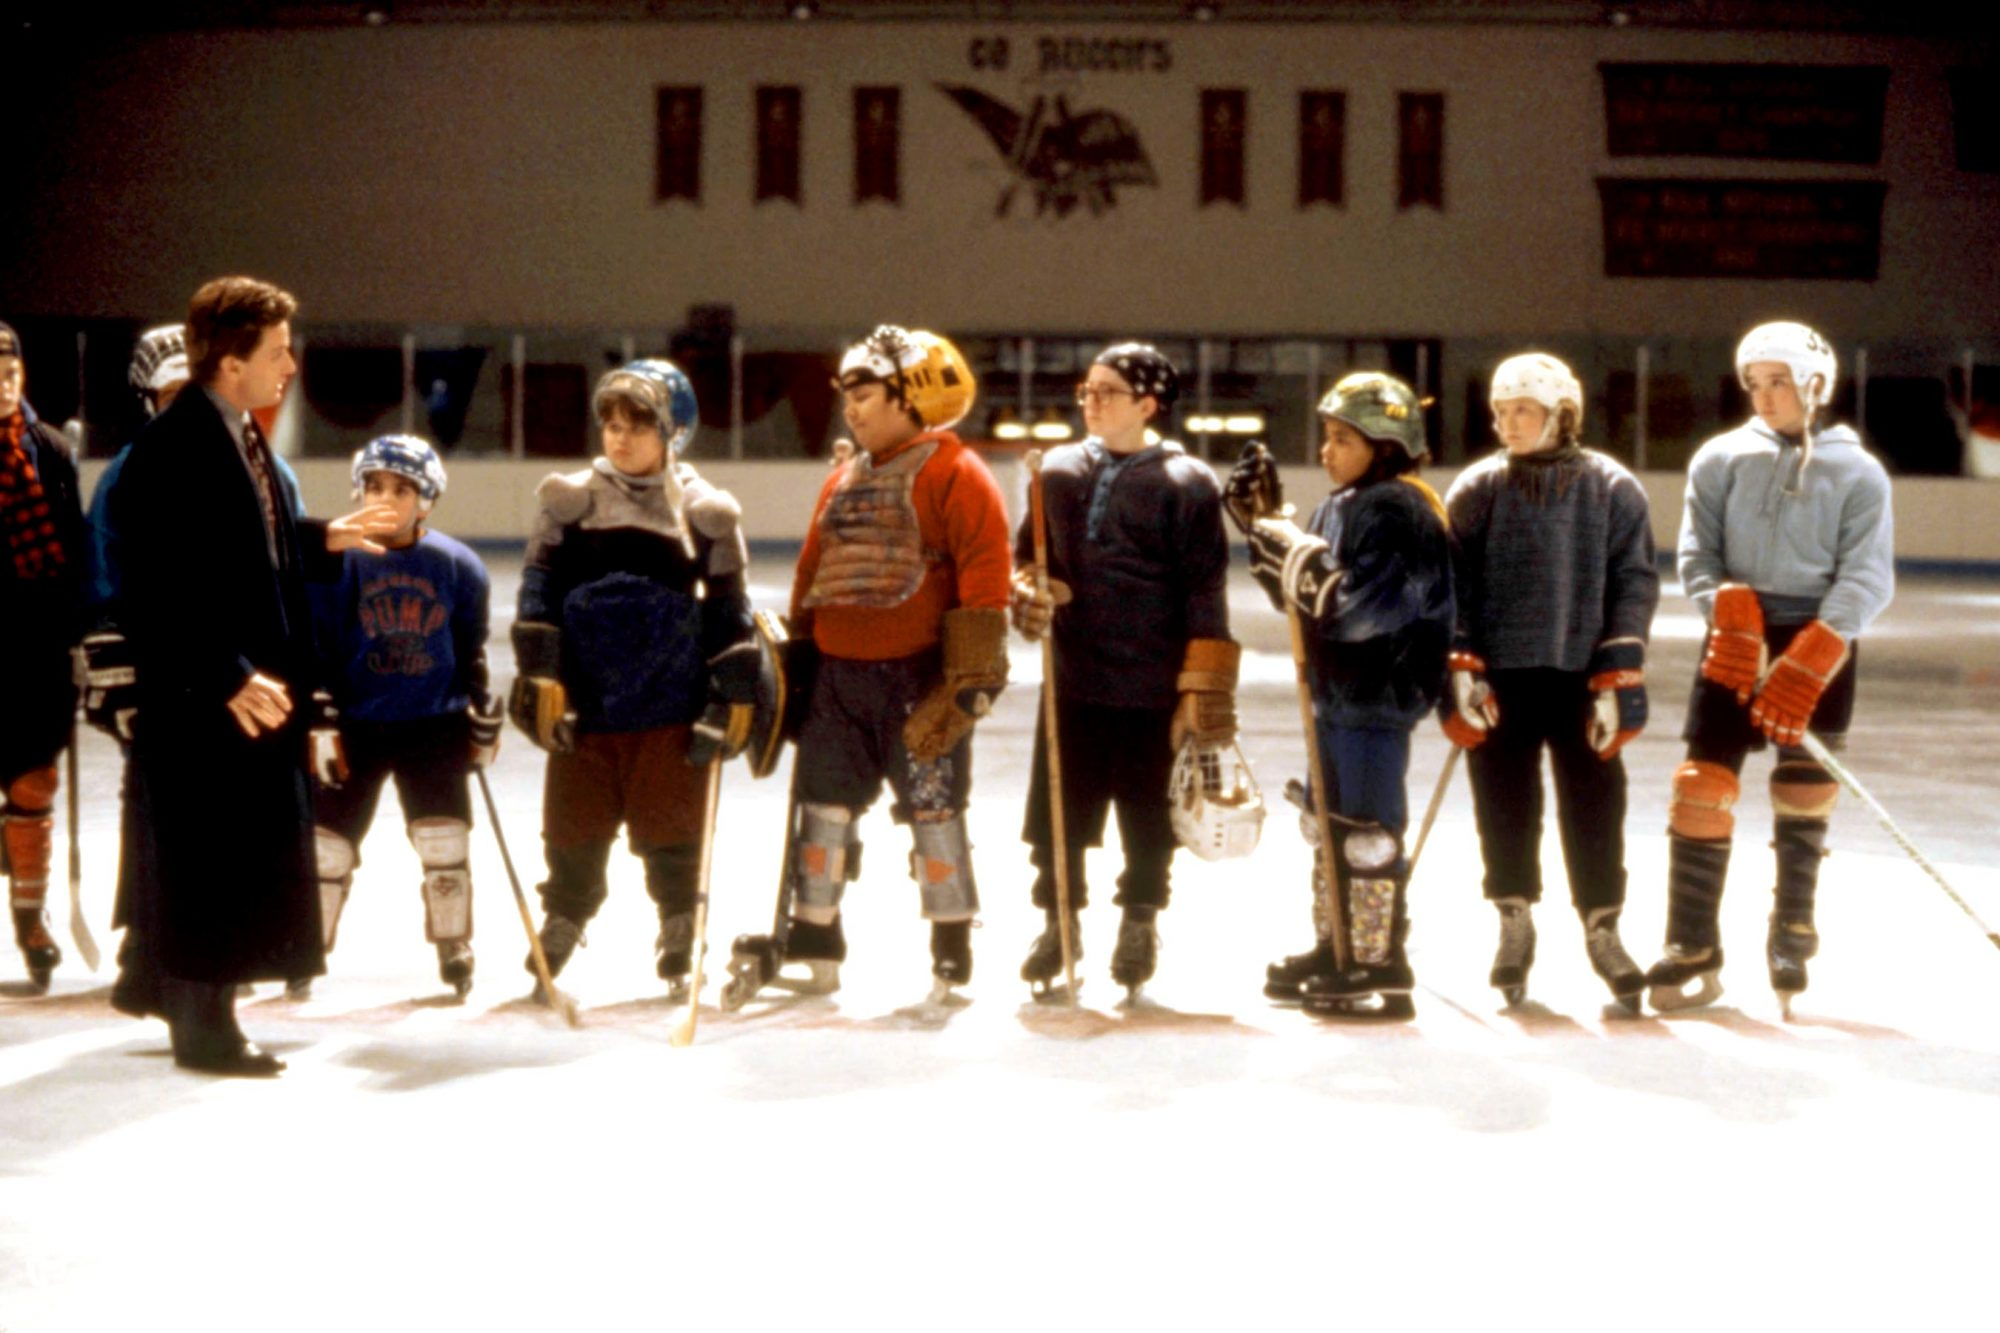 THE MIGHTY DUCKS, Emilio Estevez (l.), 1992, (c)Walt Disney Pictures/courtesy Everett Collection